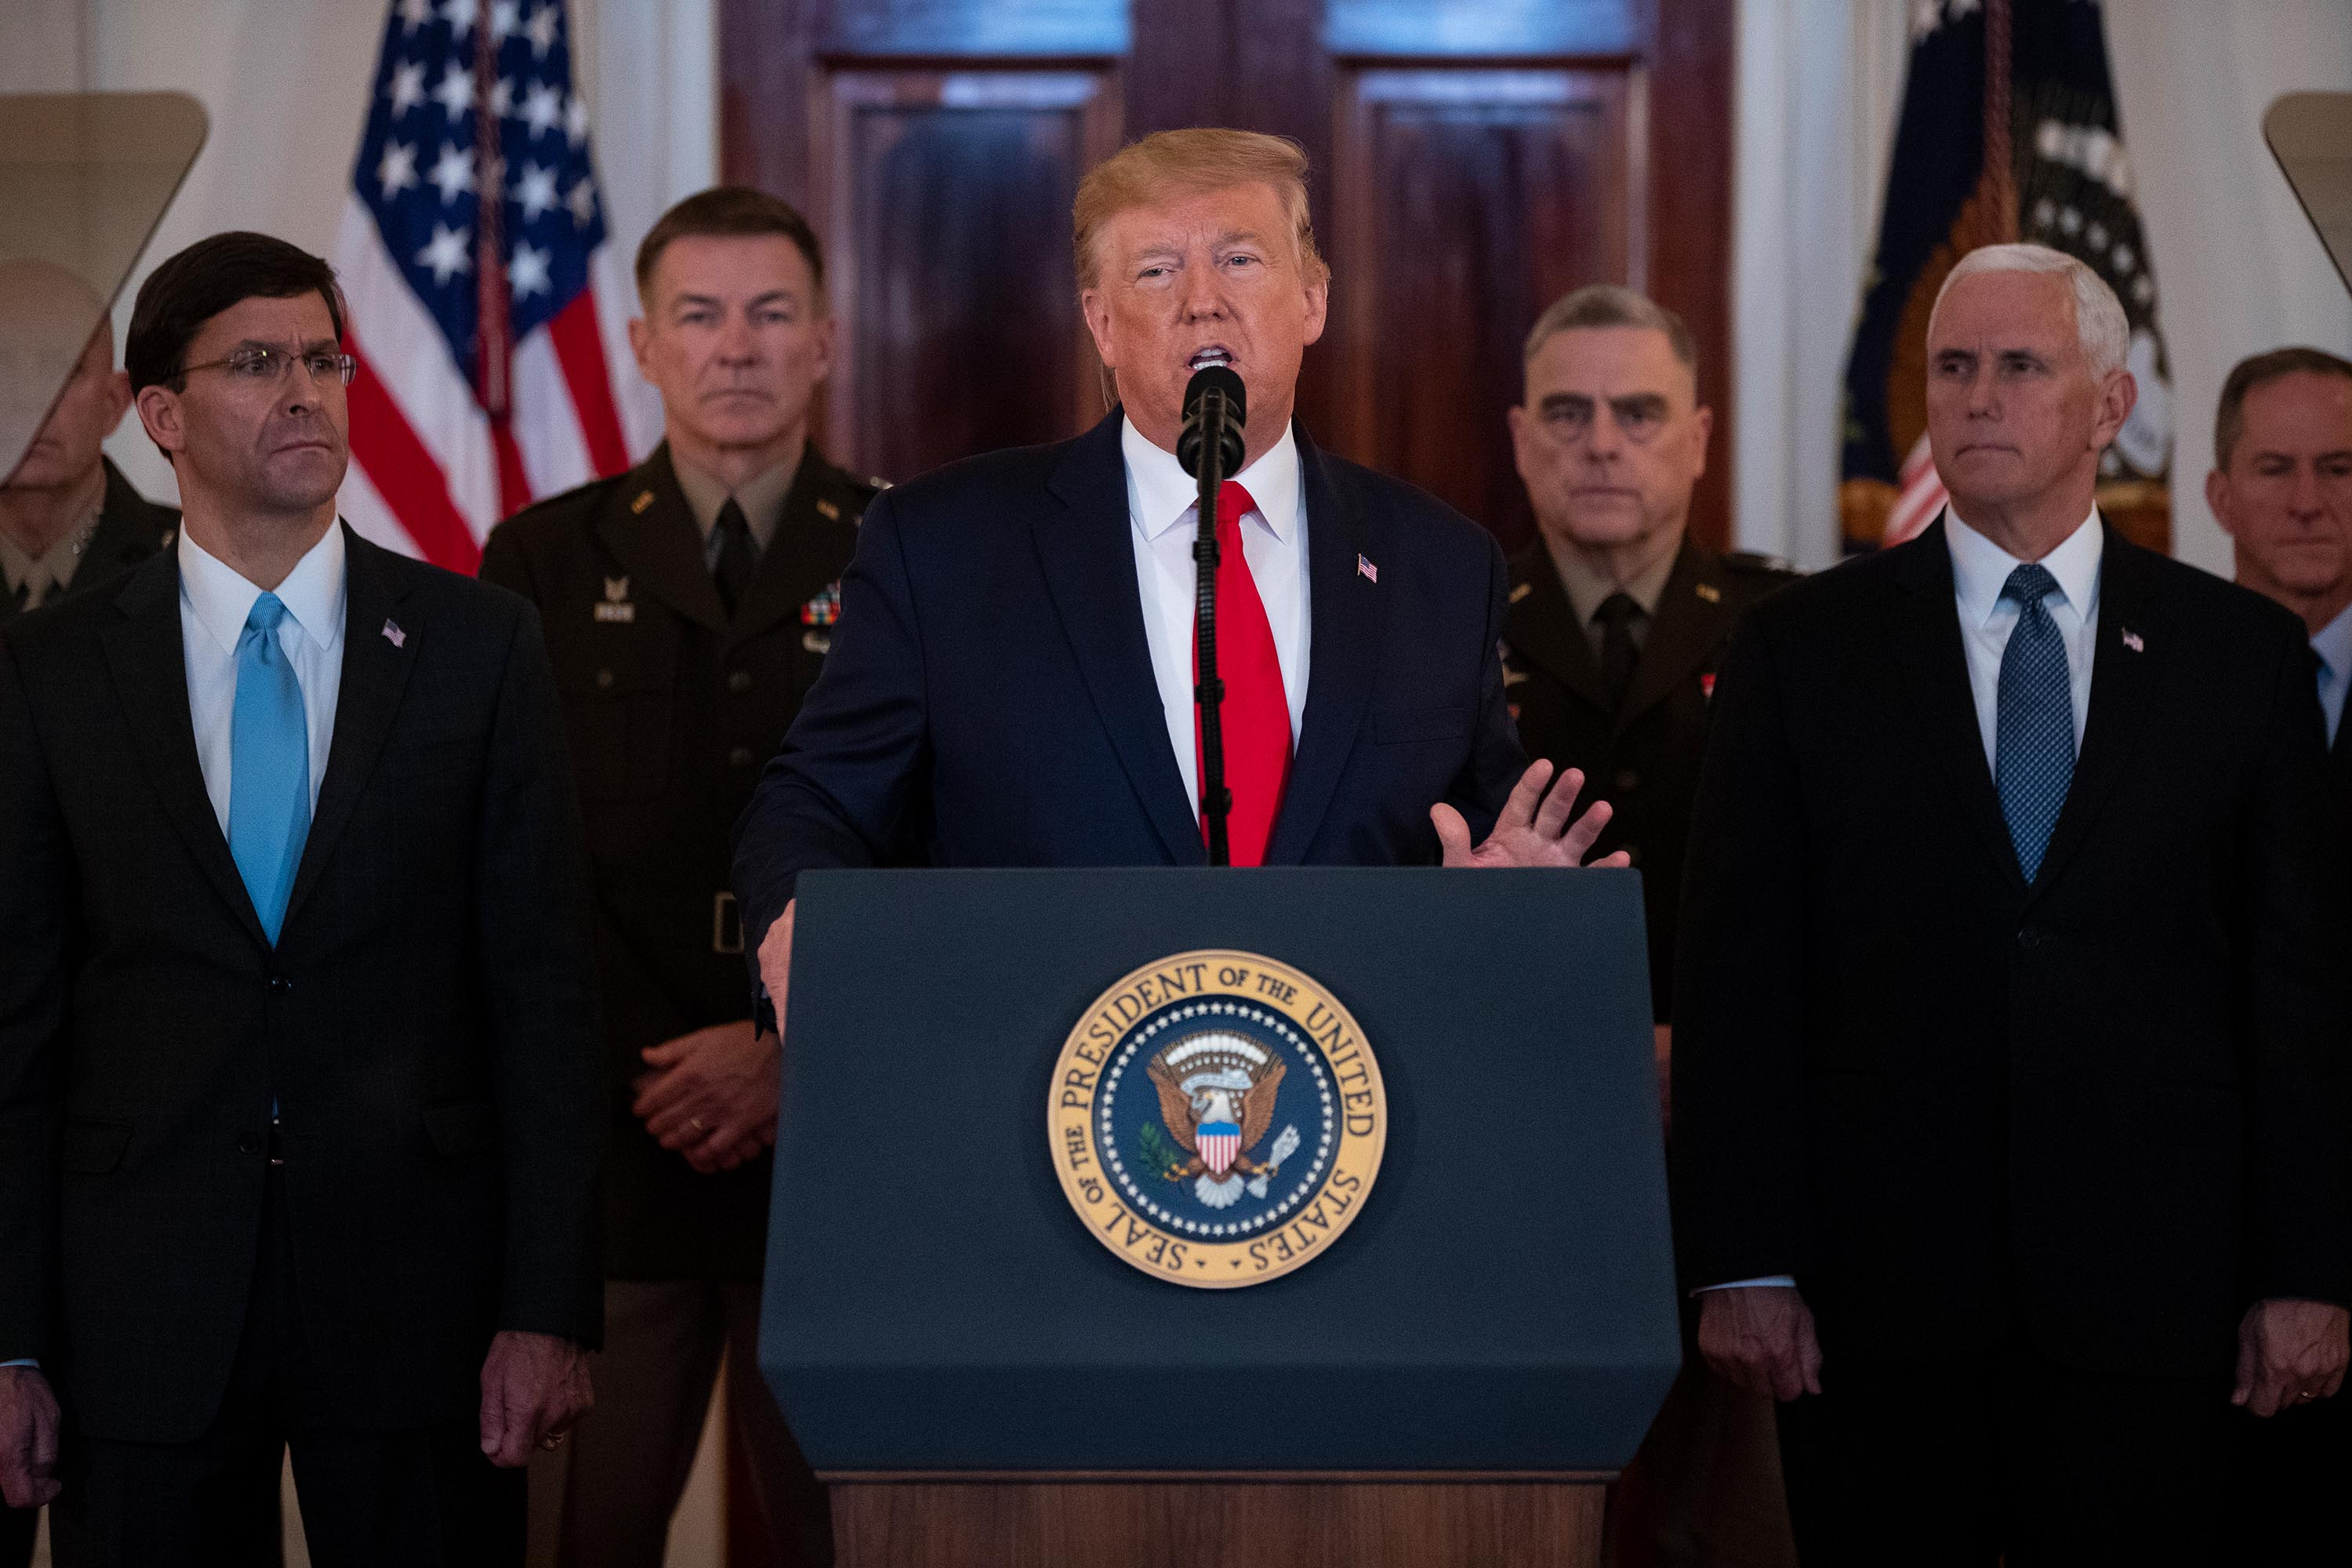 President Donald Trump addresses the nation from the White House on the ballistic missile strike that Iran launched against Iraqi air bases housing U.S. troops, Wednesday, January 8, in Washington.